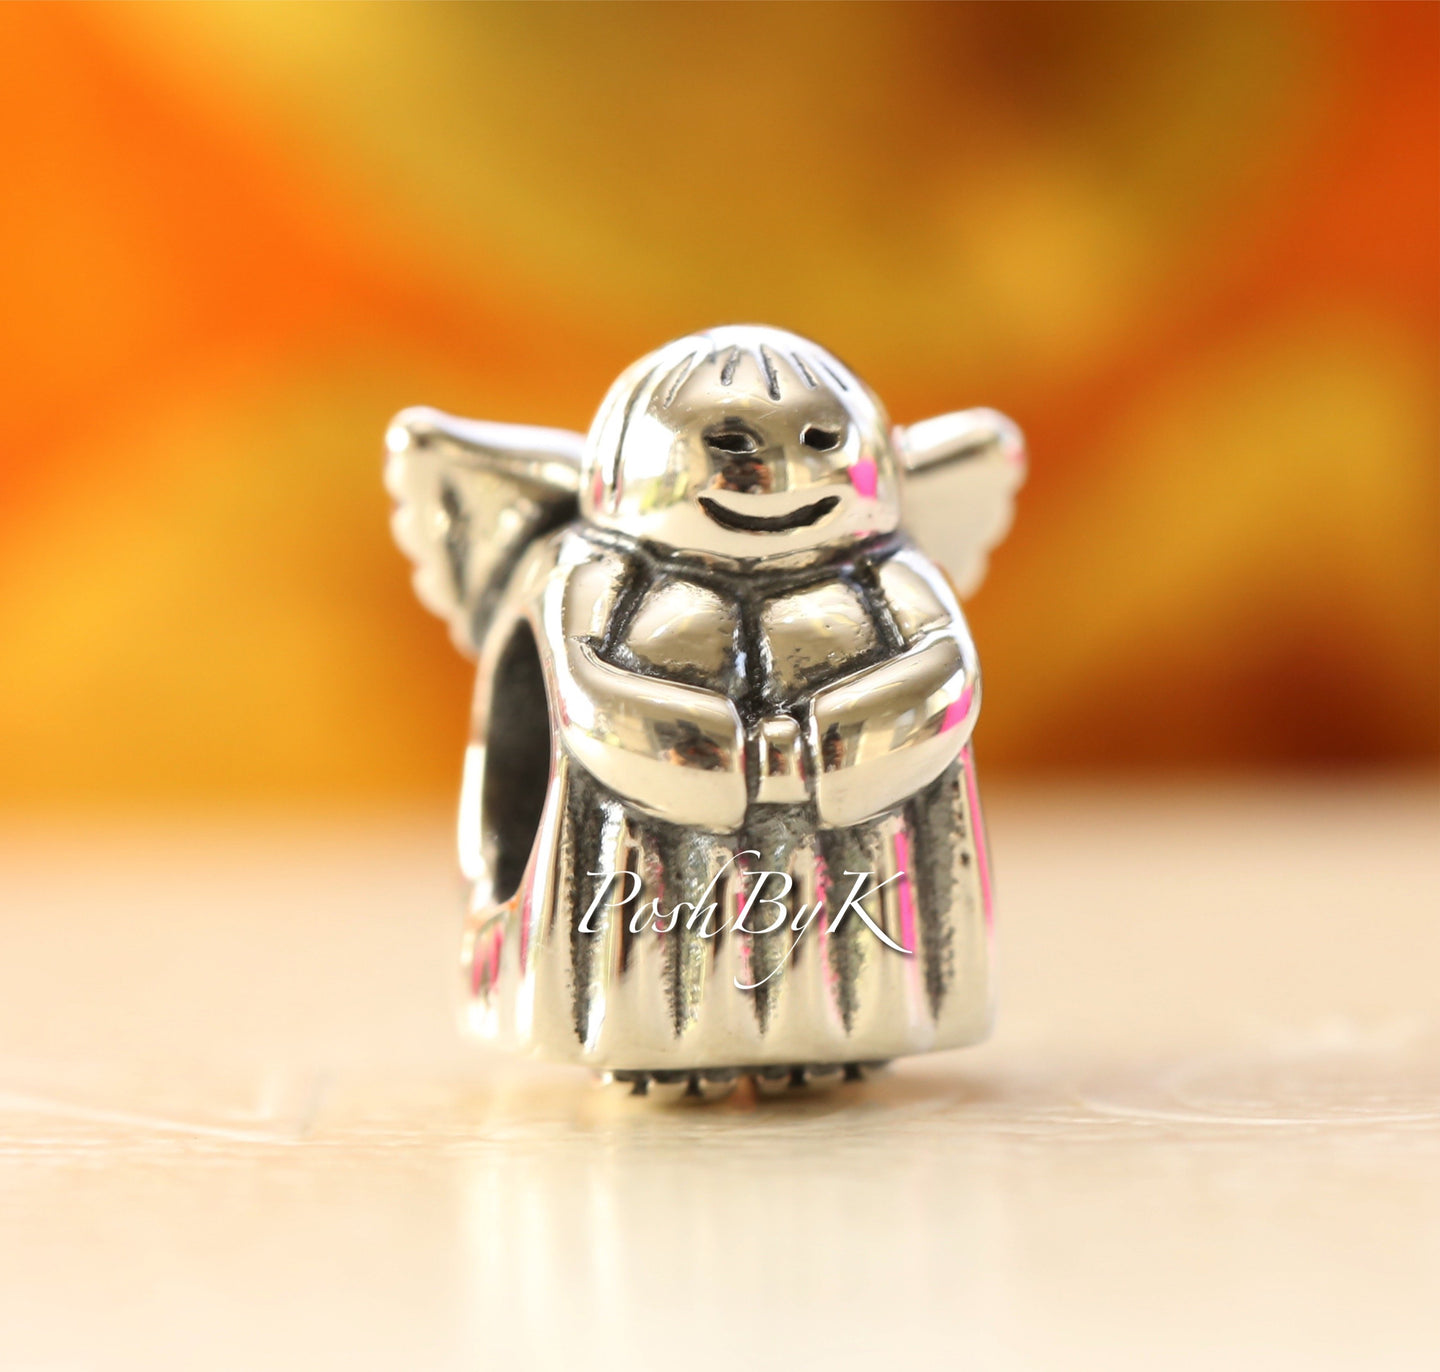 Pandora Angel of Hope Silver Charm 790337 - Posh By K